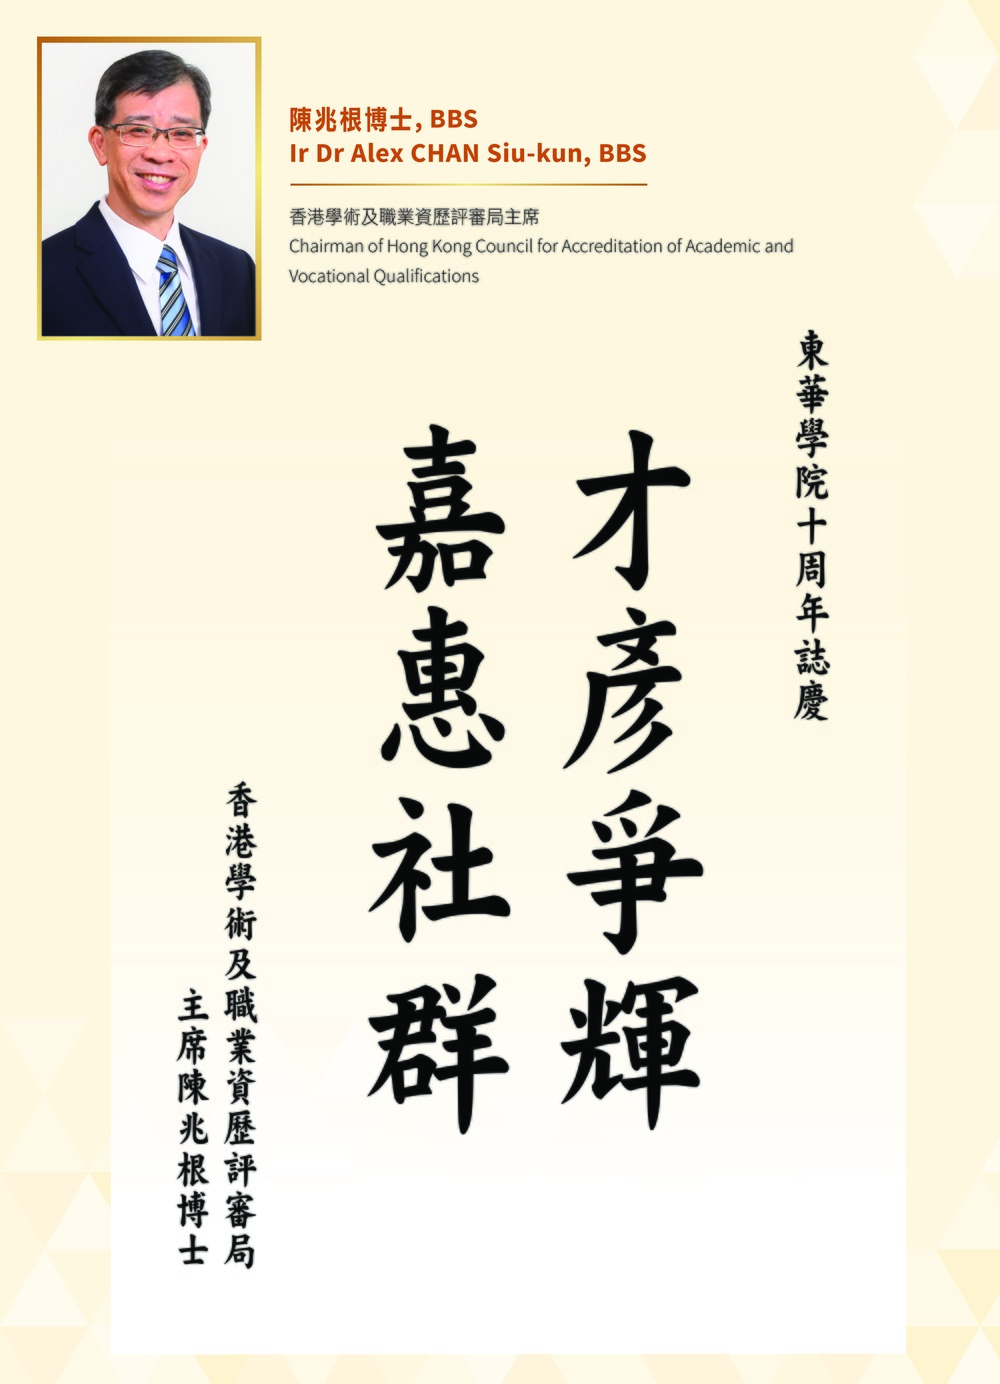 Chairman of Hong Kong Council for Accreditation of Academic and Vocational Qualifications